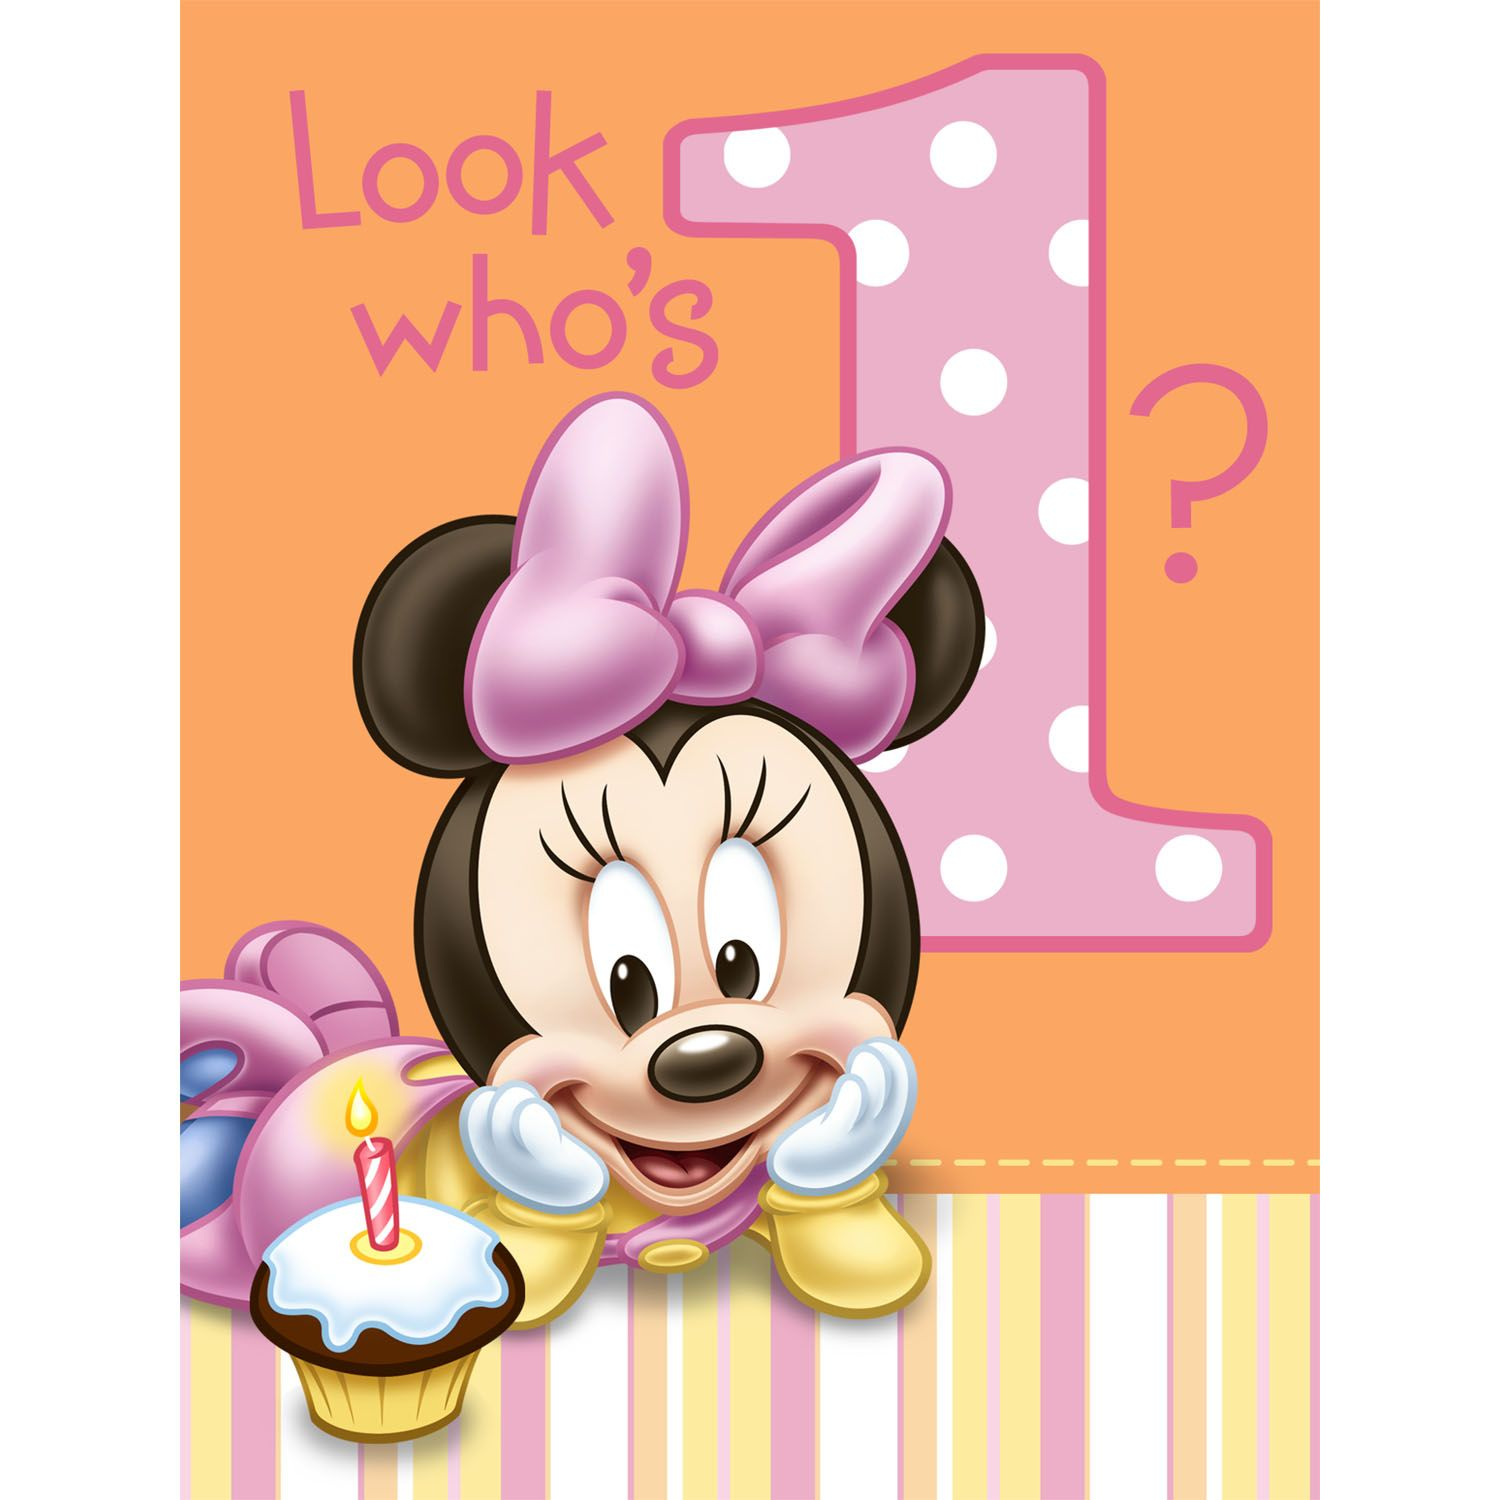 Baby Minnie Mouse Hd Wallpaper - Google Search